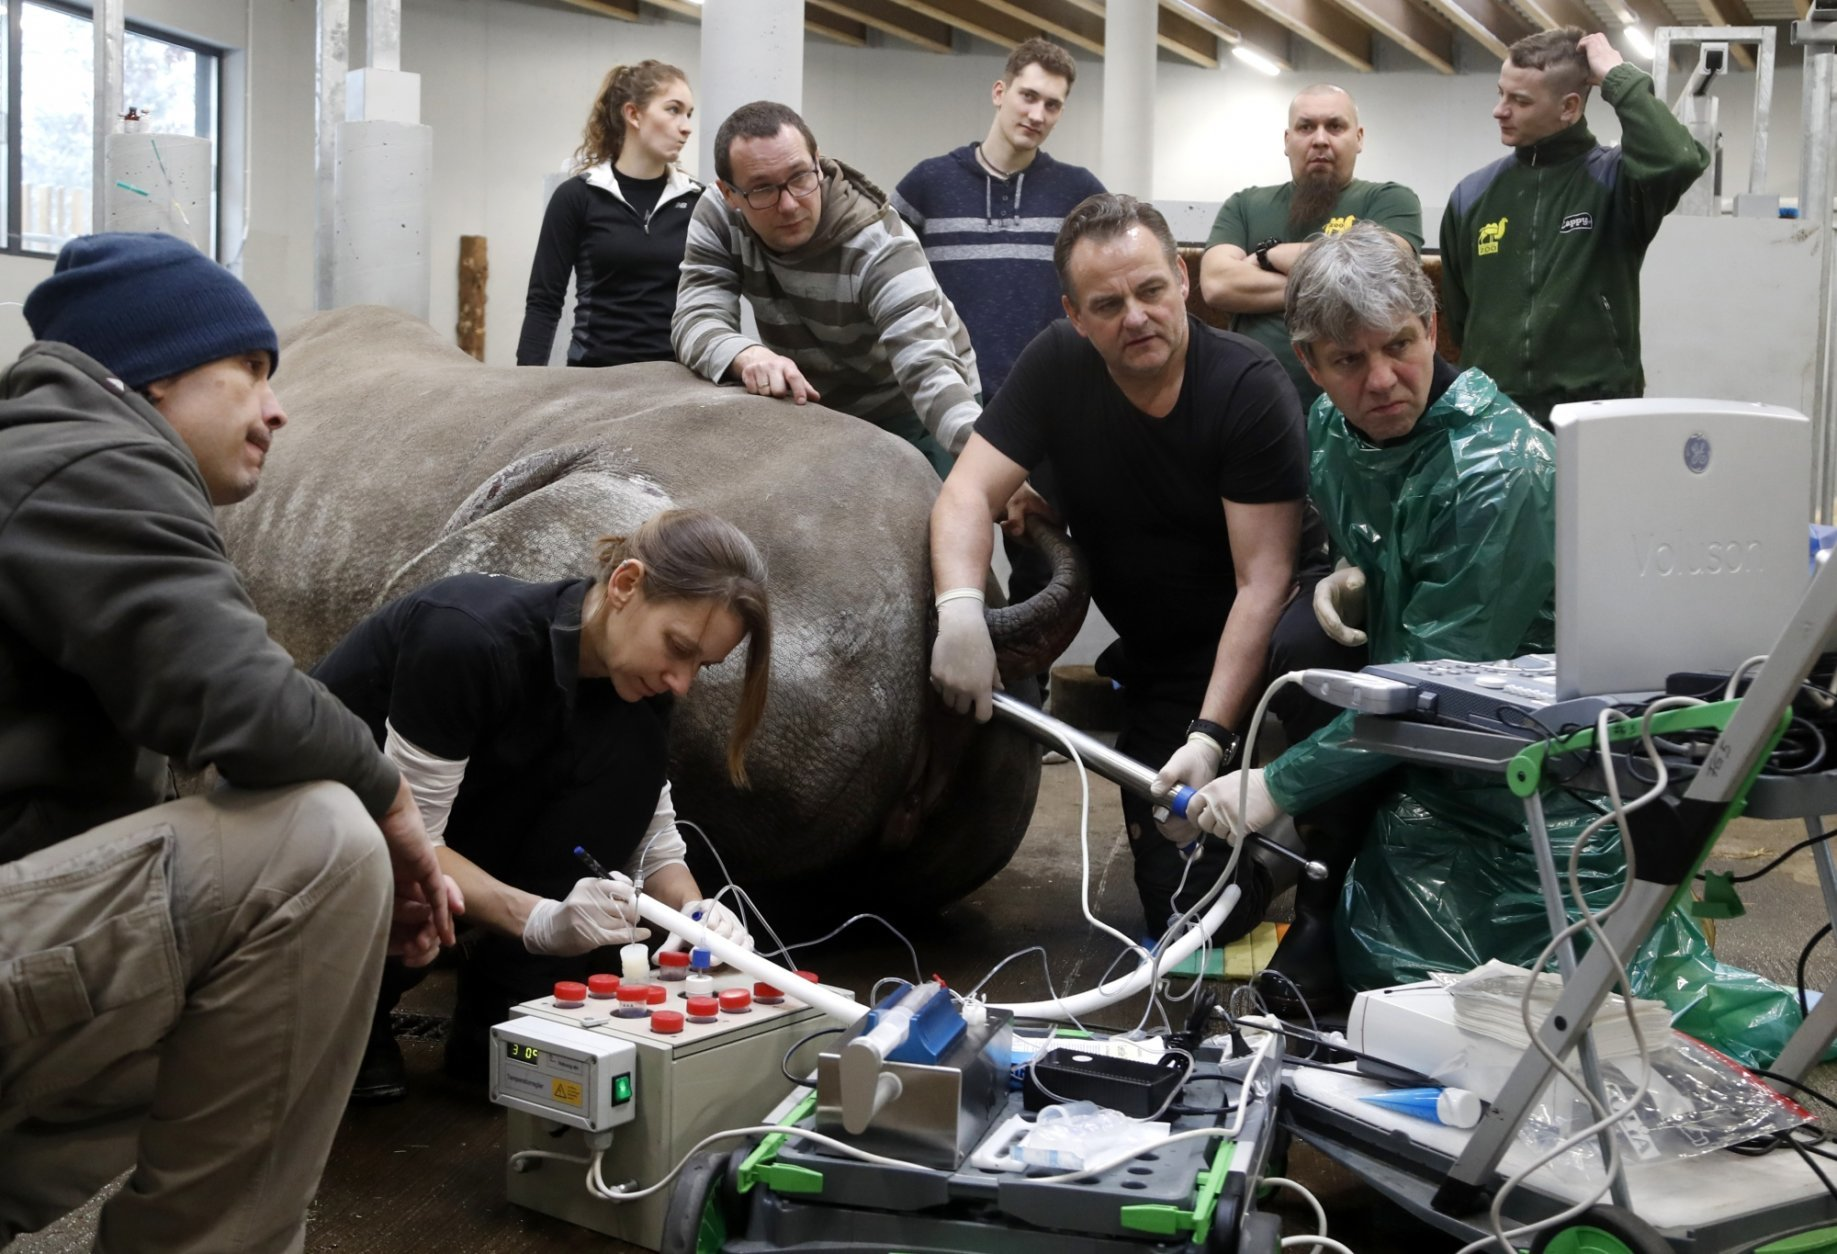 Team of experts led by Thomas Hildebrandt, right down, of the Leibniz Institute for Zoo and Wildlife Research in Berlin, harvests eggs from female southern white rhino, 17-year-old Hope, at a zoo park in Chorzow, Poland, Wednesday, Feb. 13, 2019. (AP Photo/Petr David Josek)